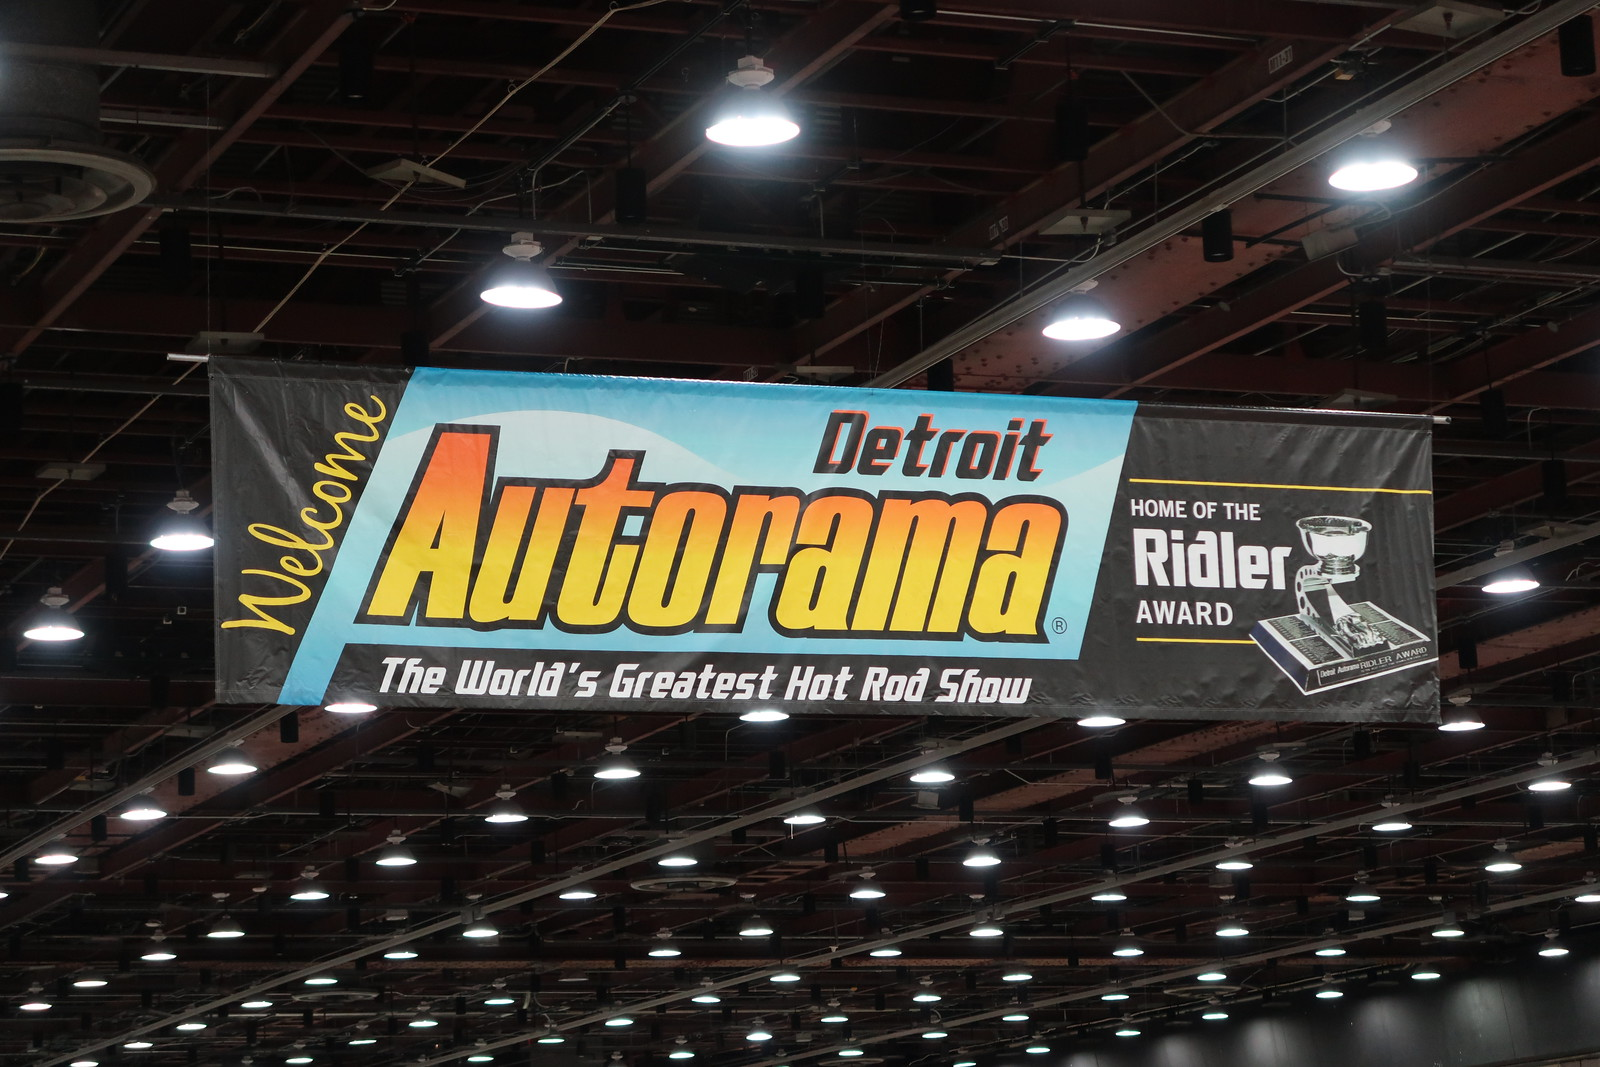 2018 Detroit Autorama, Cobo Center, Detroit, Michigan - 3/3/18